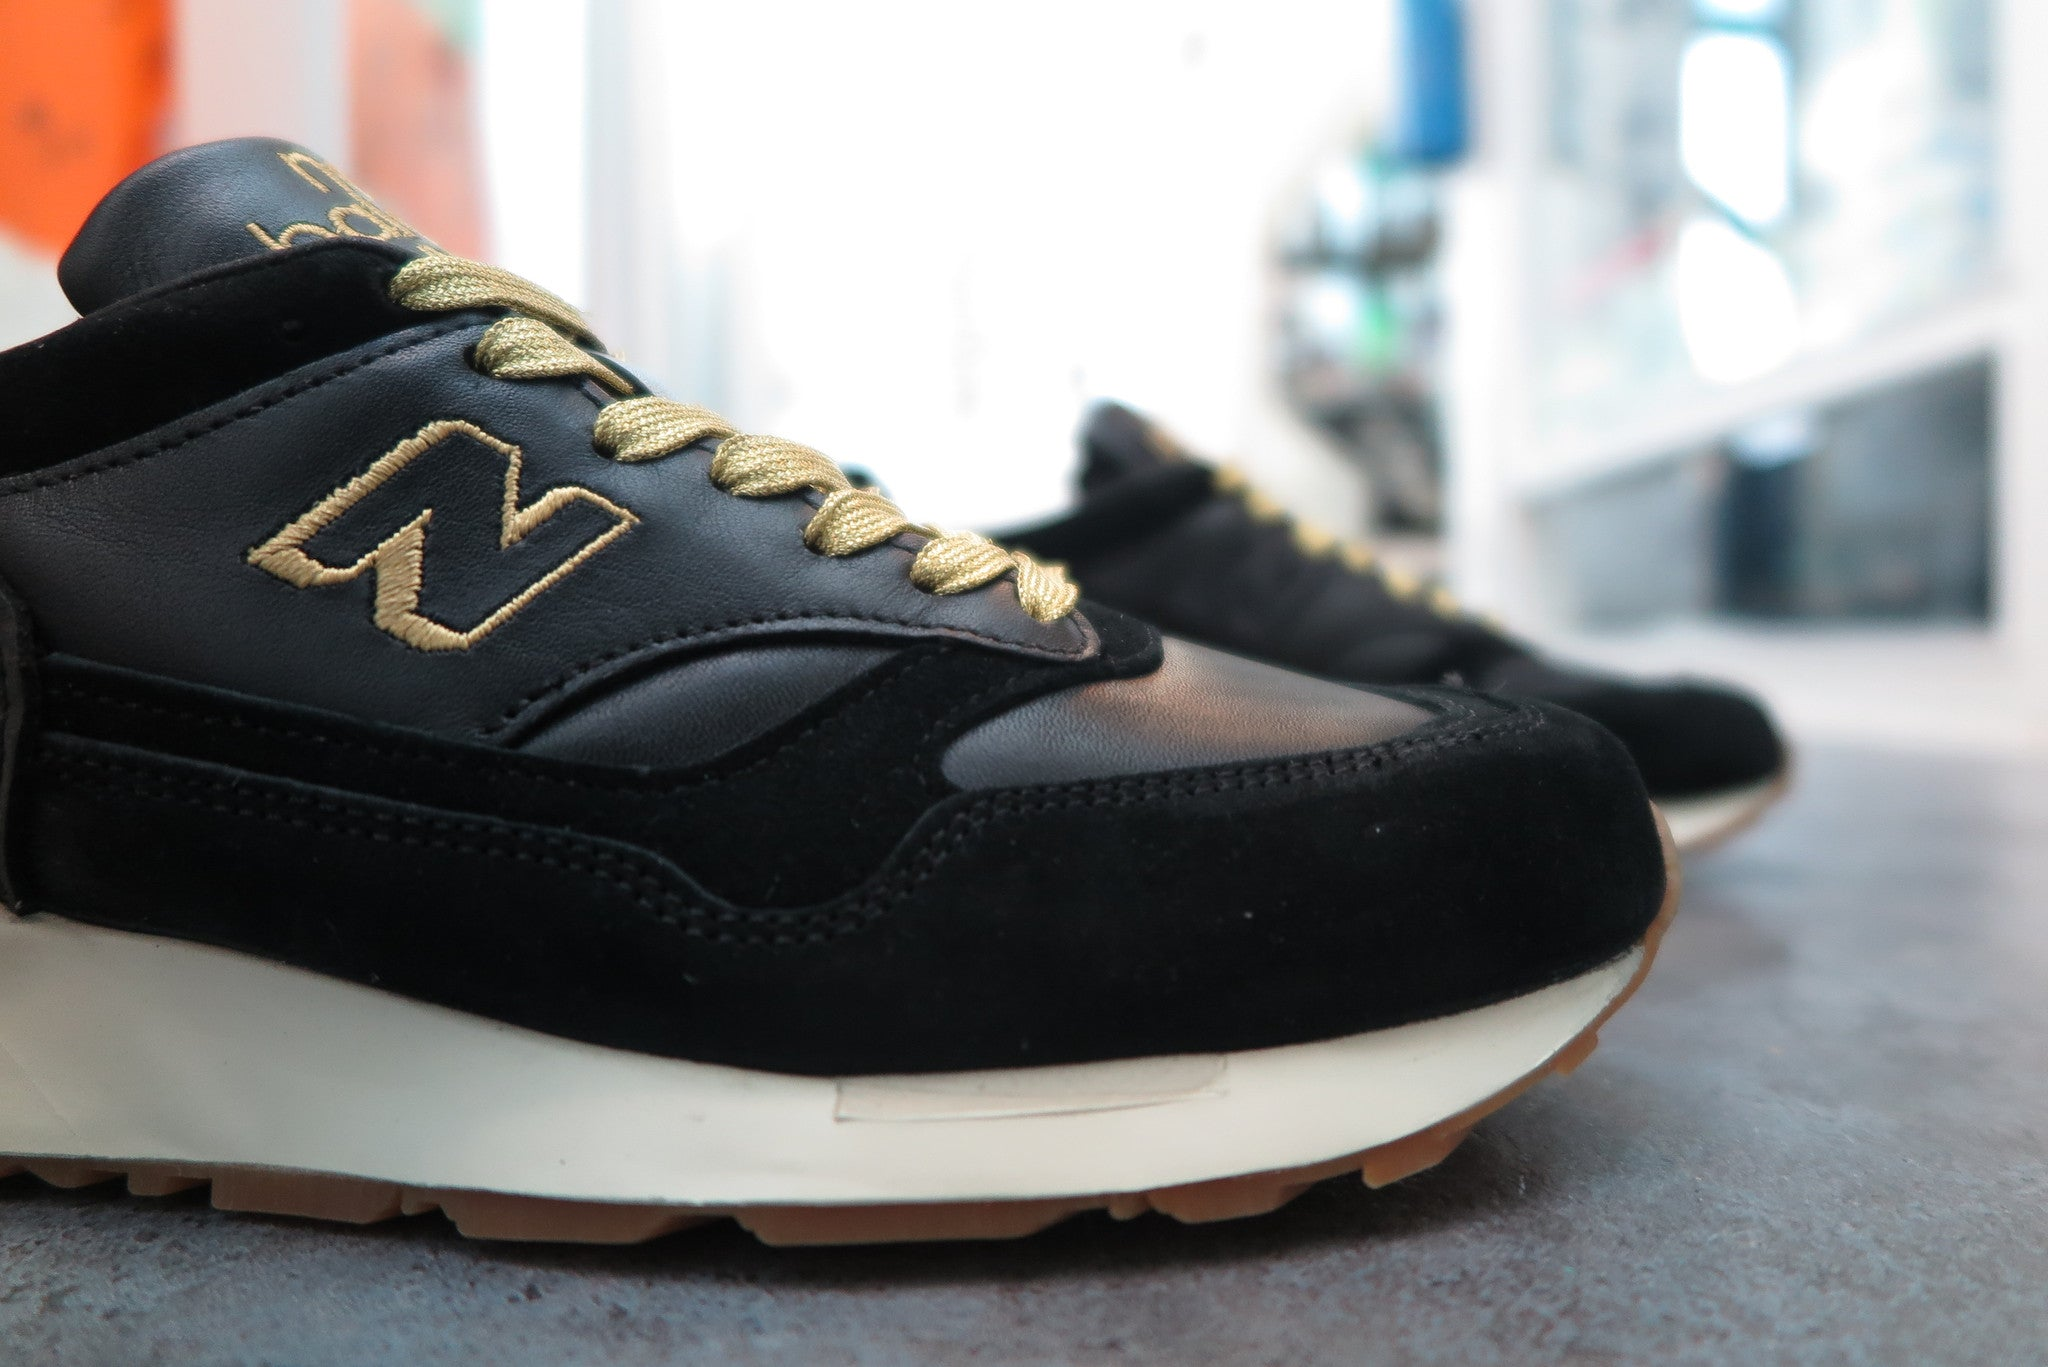 Foot Patrol X New Balance M1500FPK Made in England-Sneakers-Navy Selected Shop